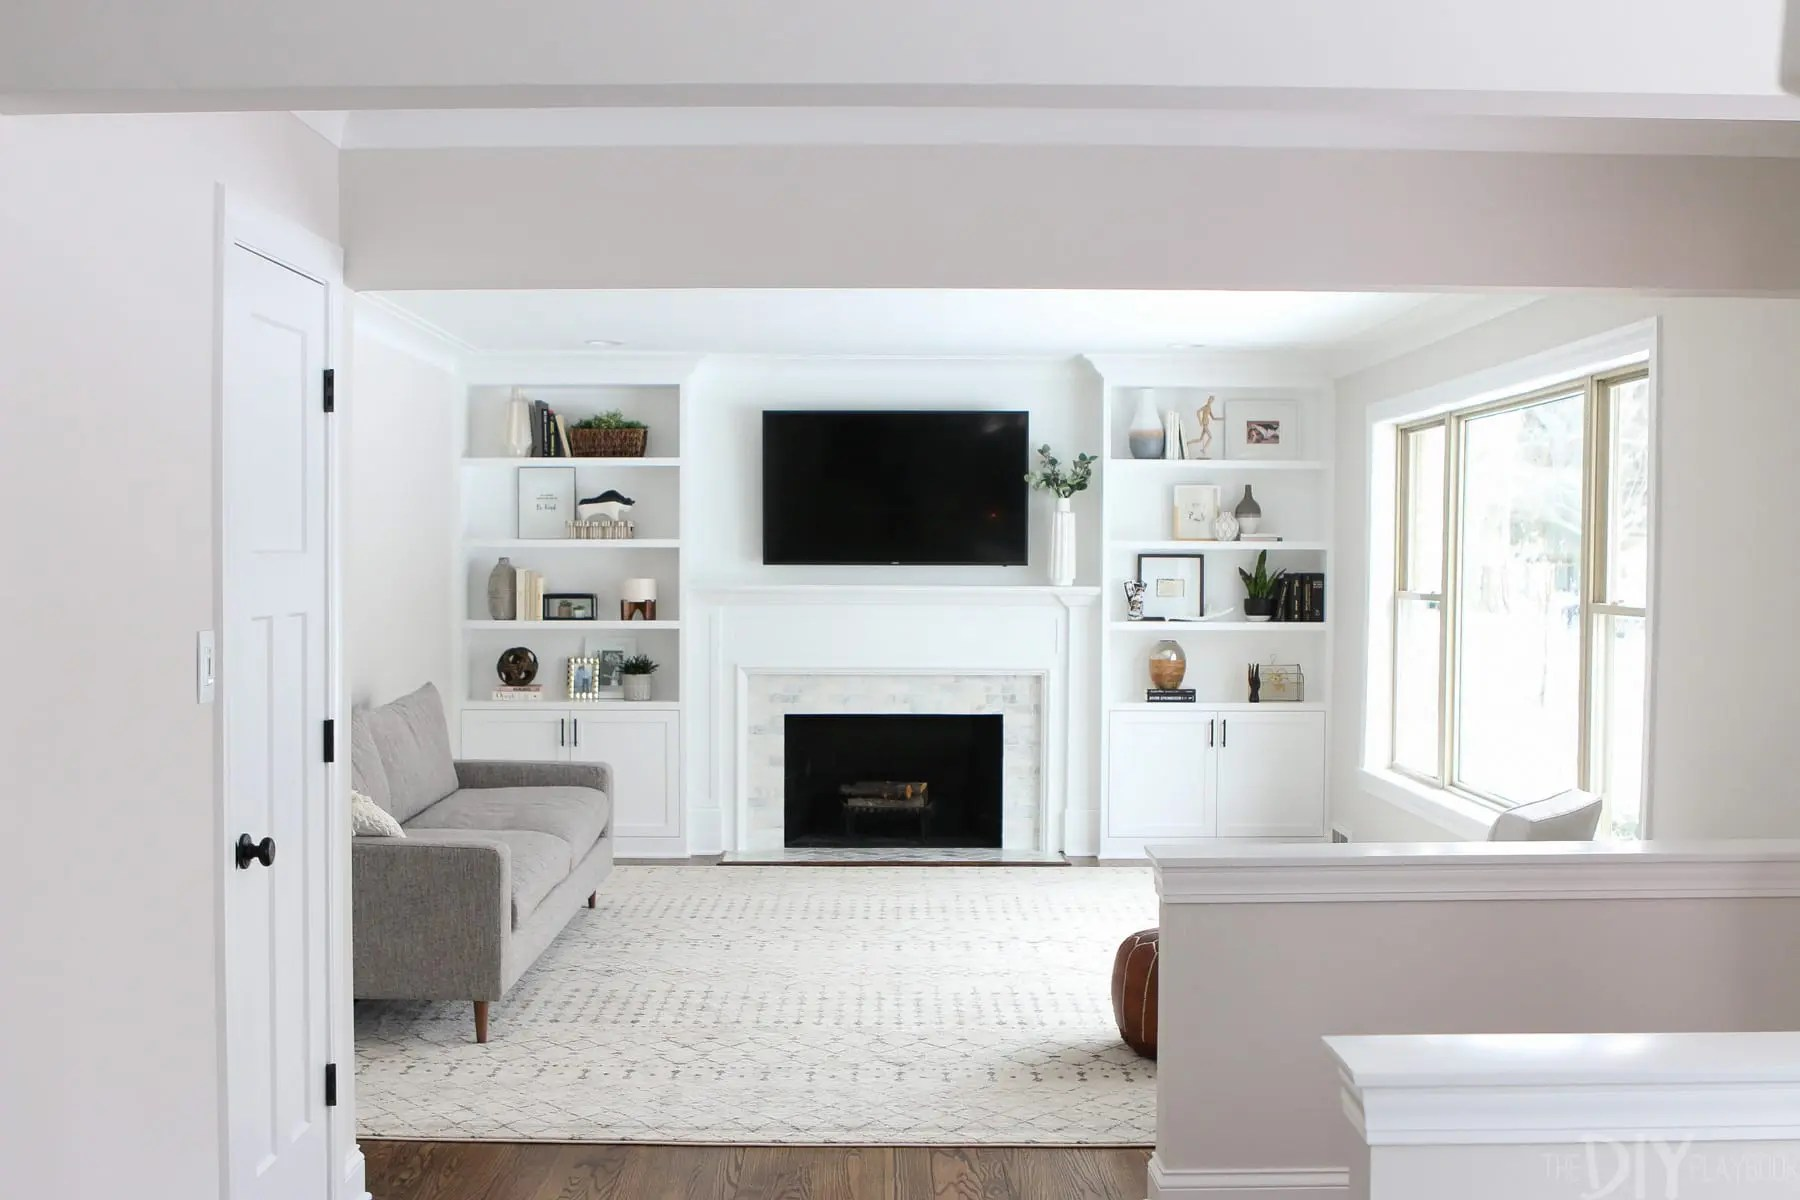 Fireplaces With Stone Surrounding White Built Ins Around The Fireplace Before And After The Diy